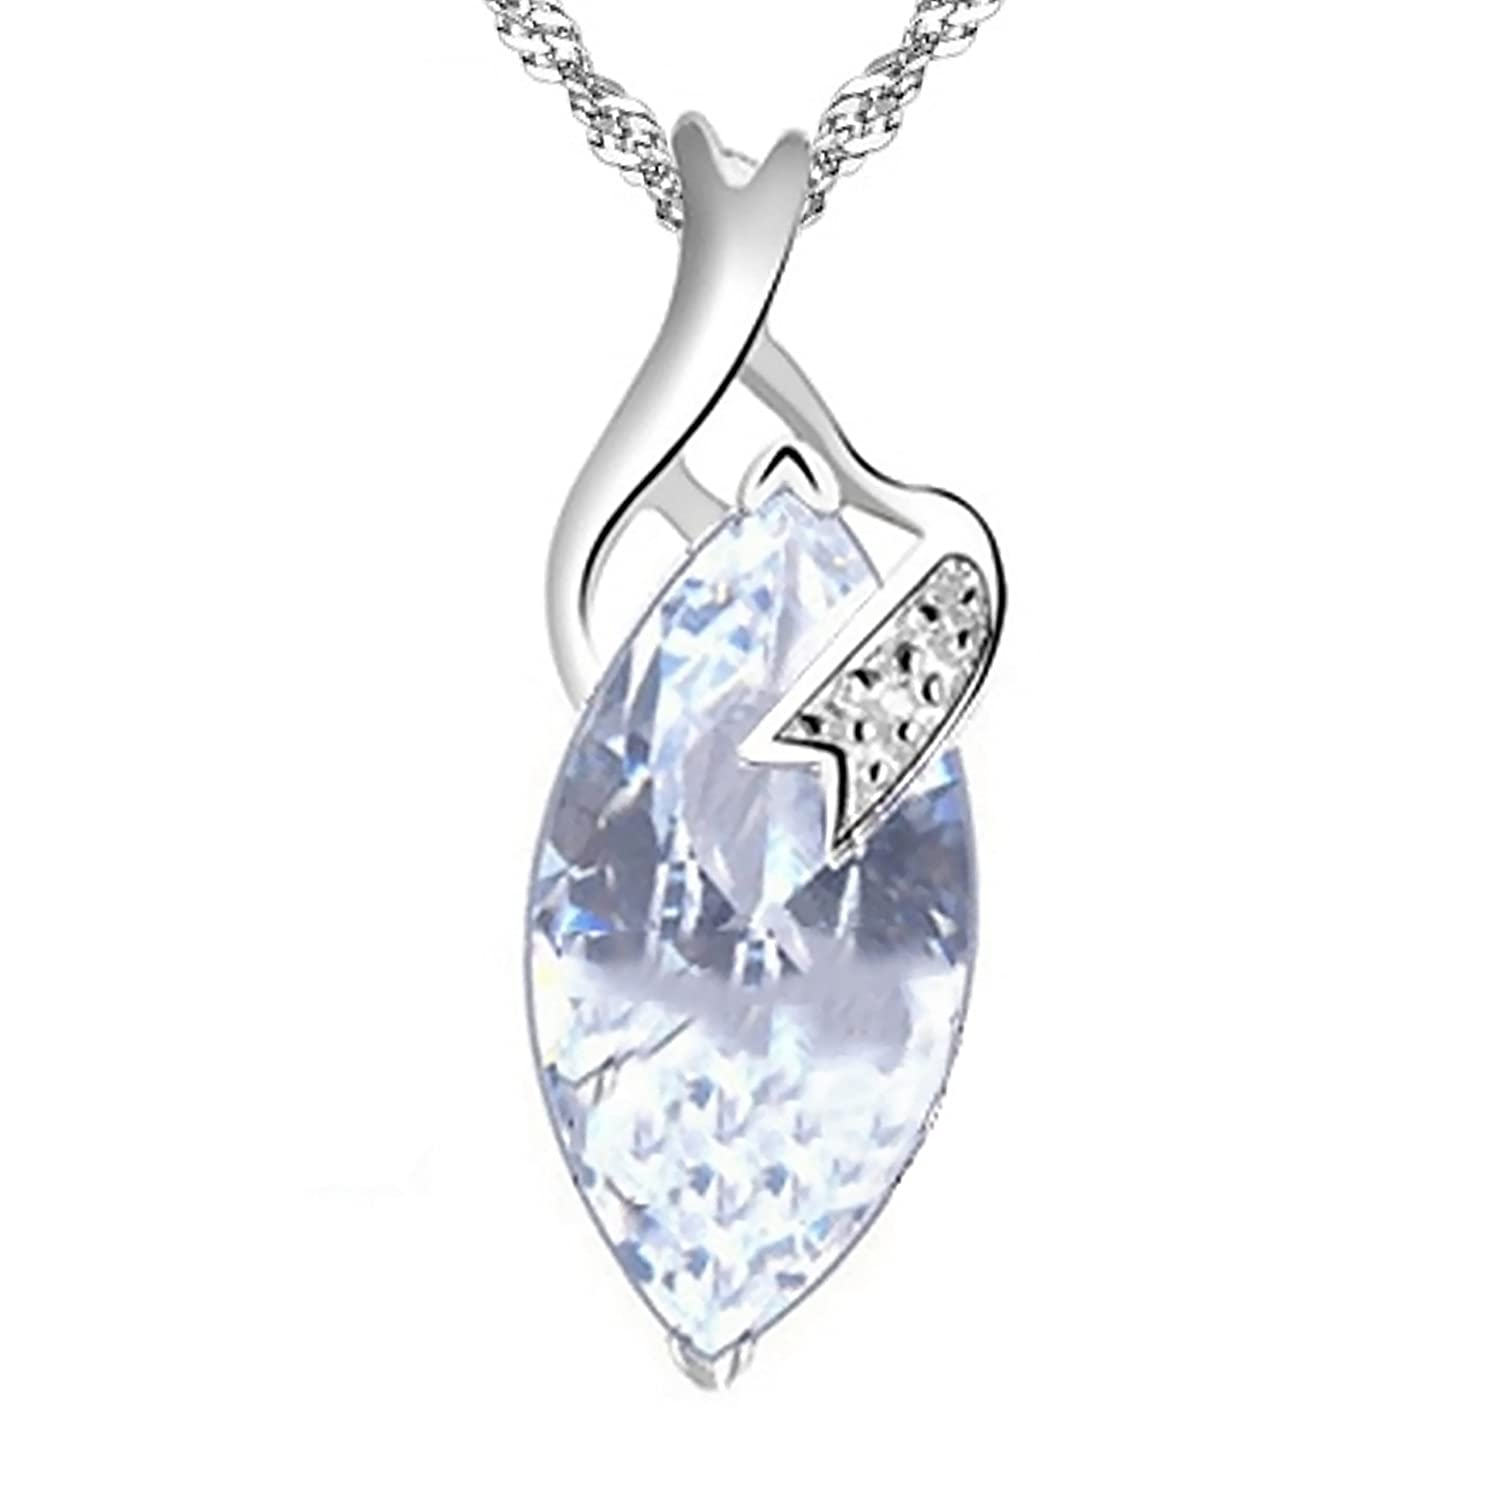 Amazon le rve the dream sterling silver pendant necklace amazon le rve the dream sterling silver pendant necklace jewelry mozeypictures Choice Image